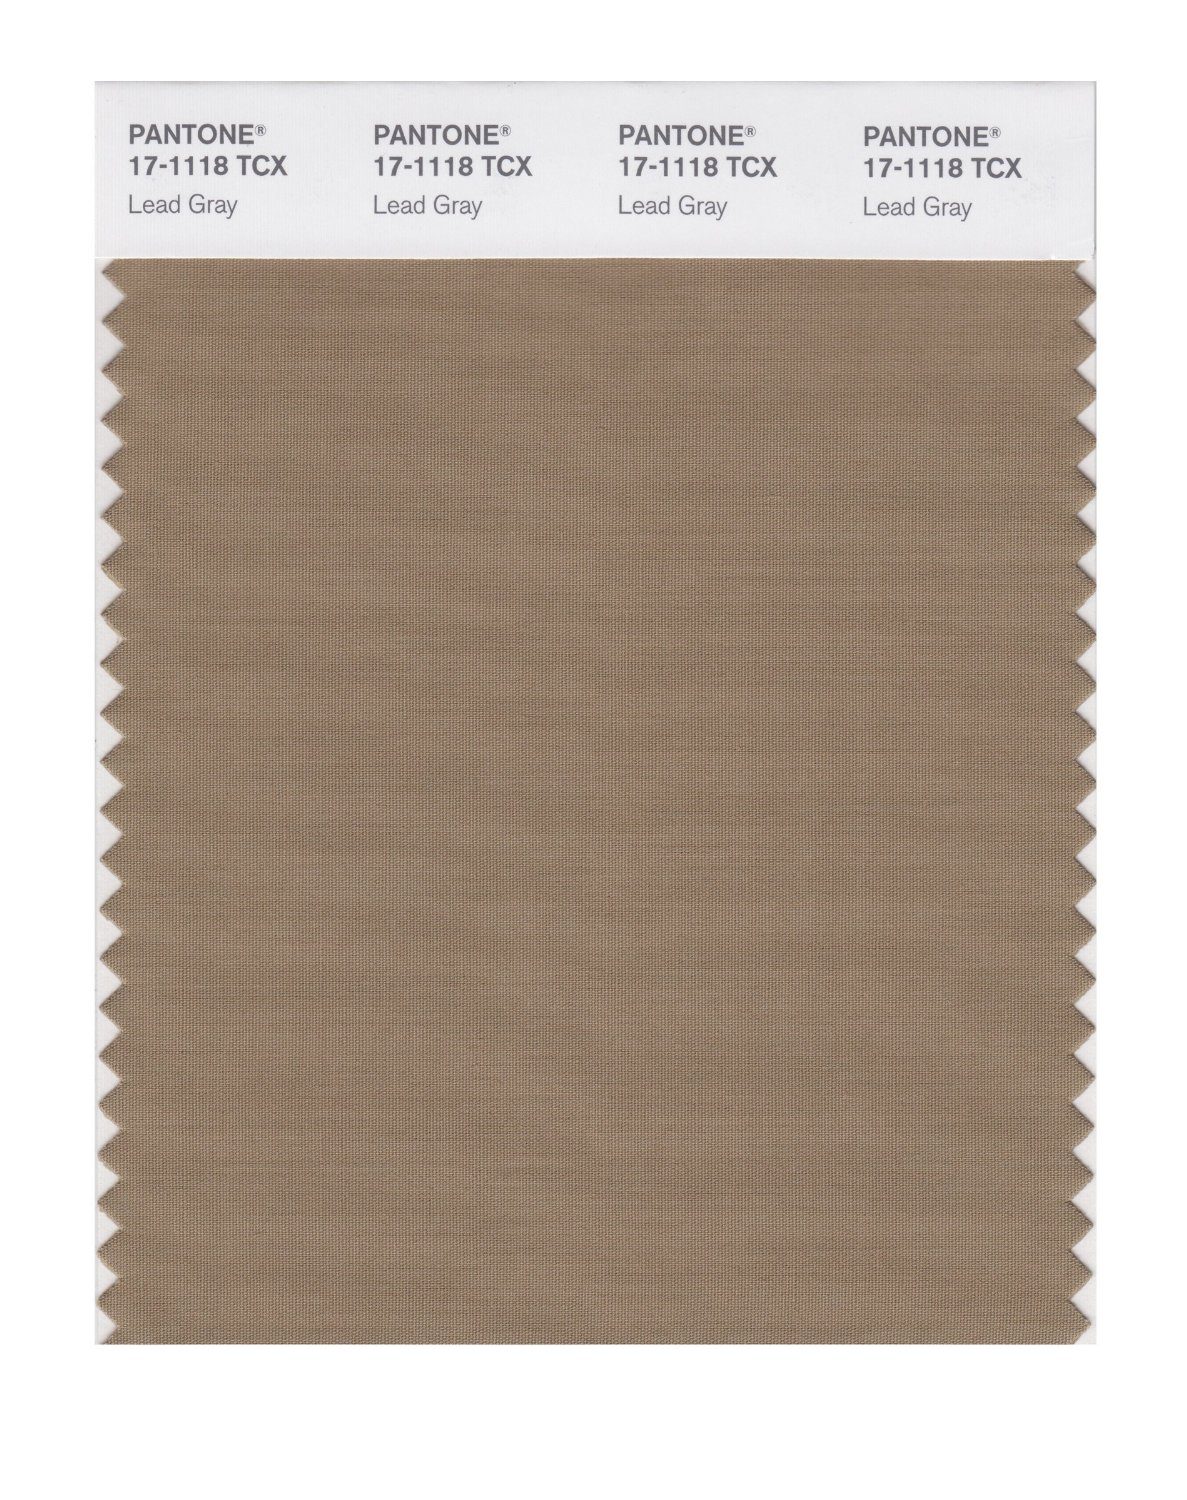 Pantone Smart Swatch 17-1118 Lead Gray